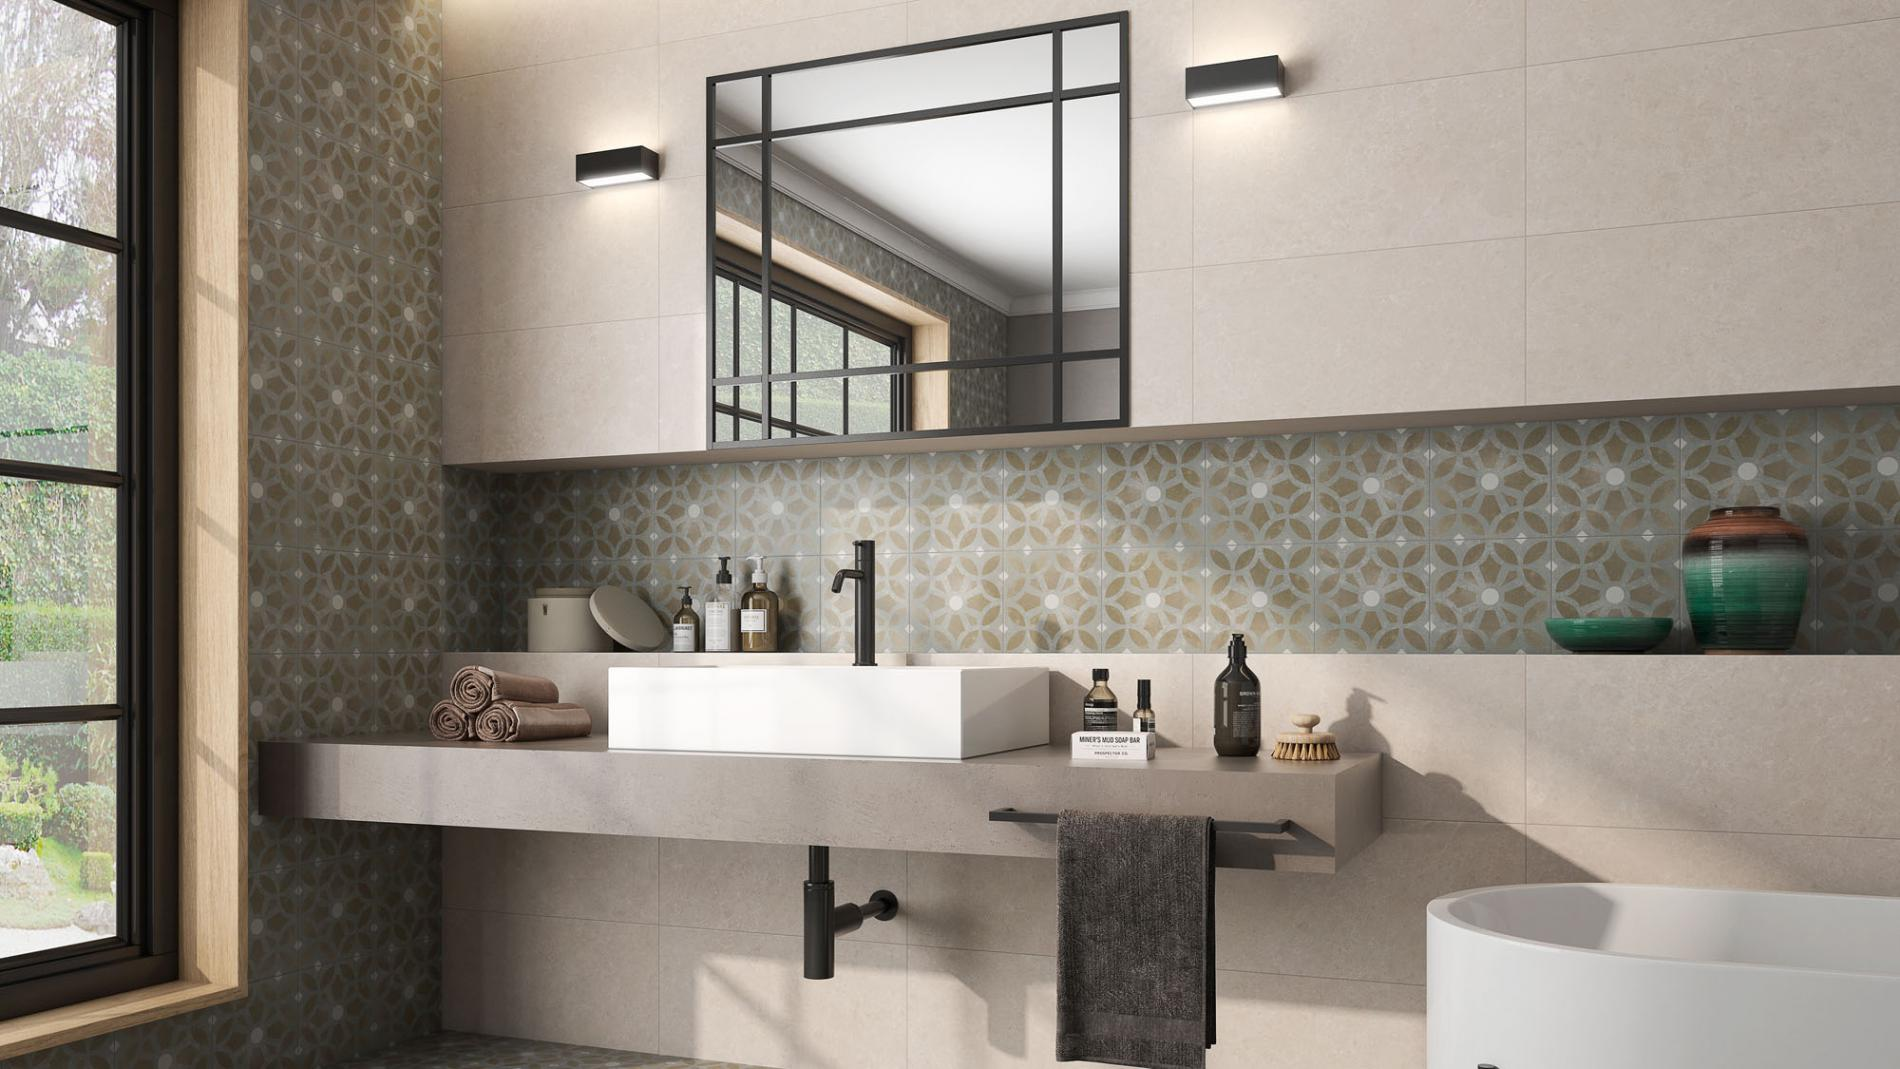 pam1900x52 Tiles dublin waterloo bathrooms commercial contracts ireland supply and fit luxury.jpg